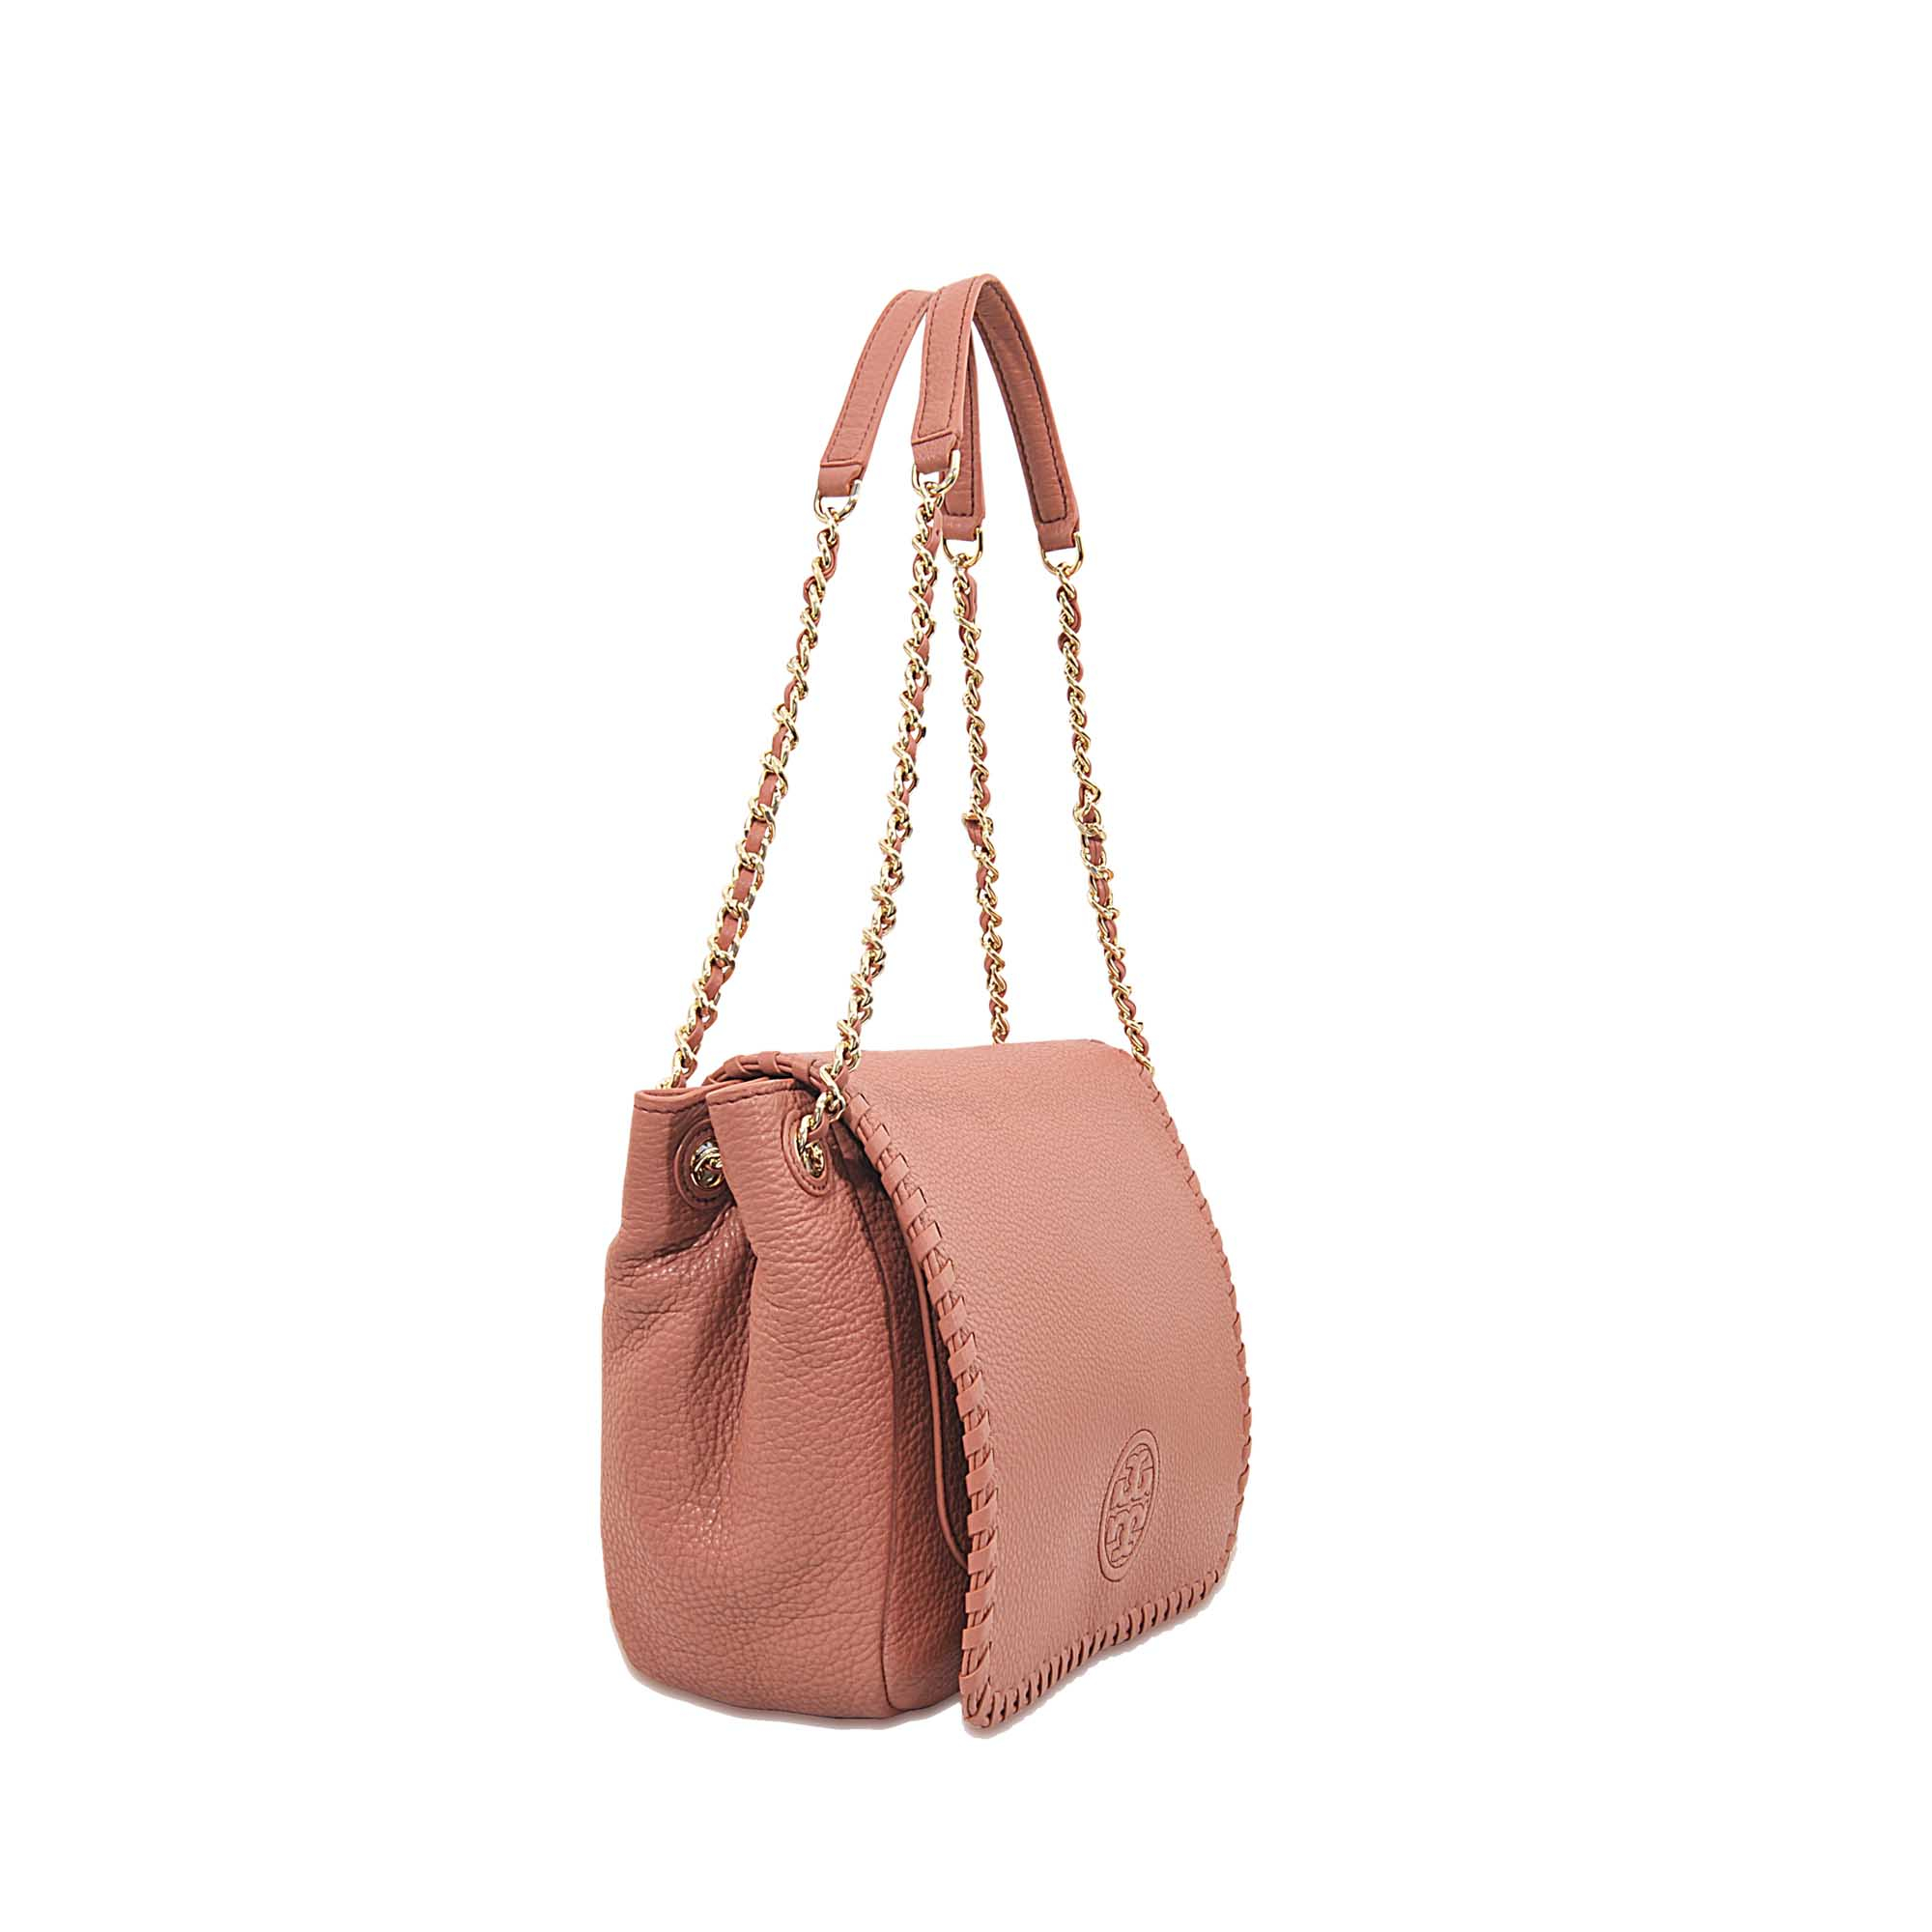 Lyst - Tory Burch Marion Small Flap Shoulder Bag in Pink 6969c30b8